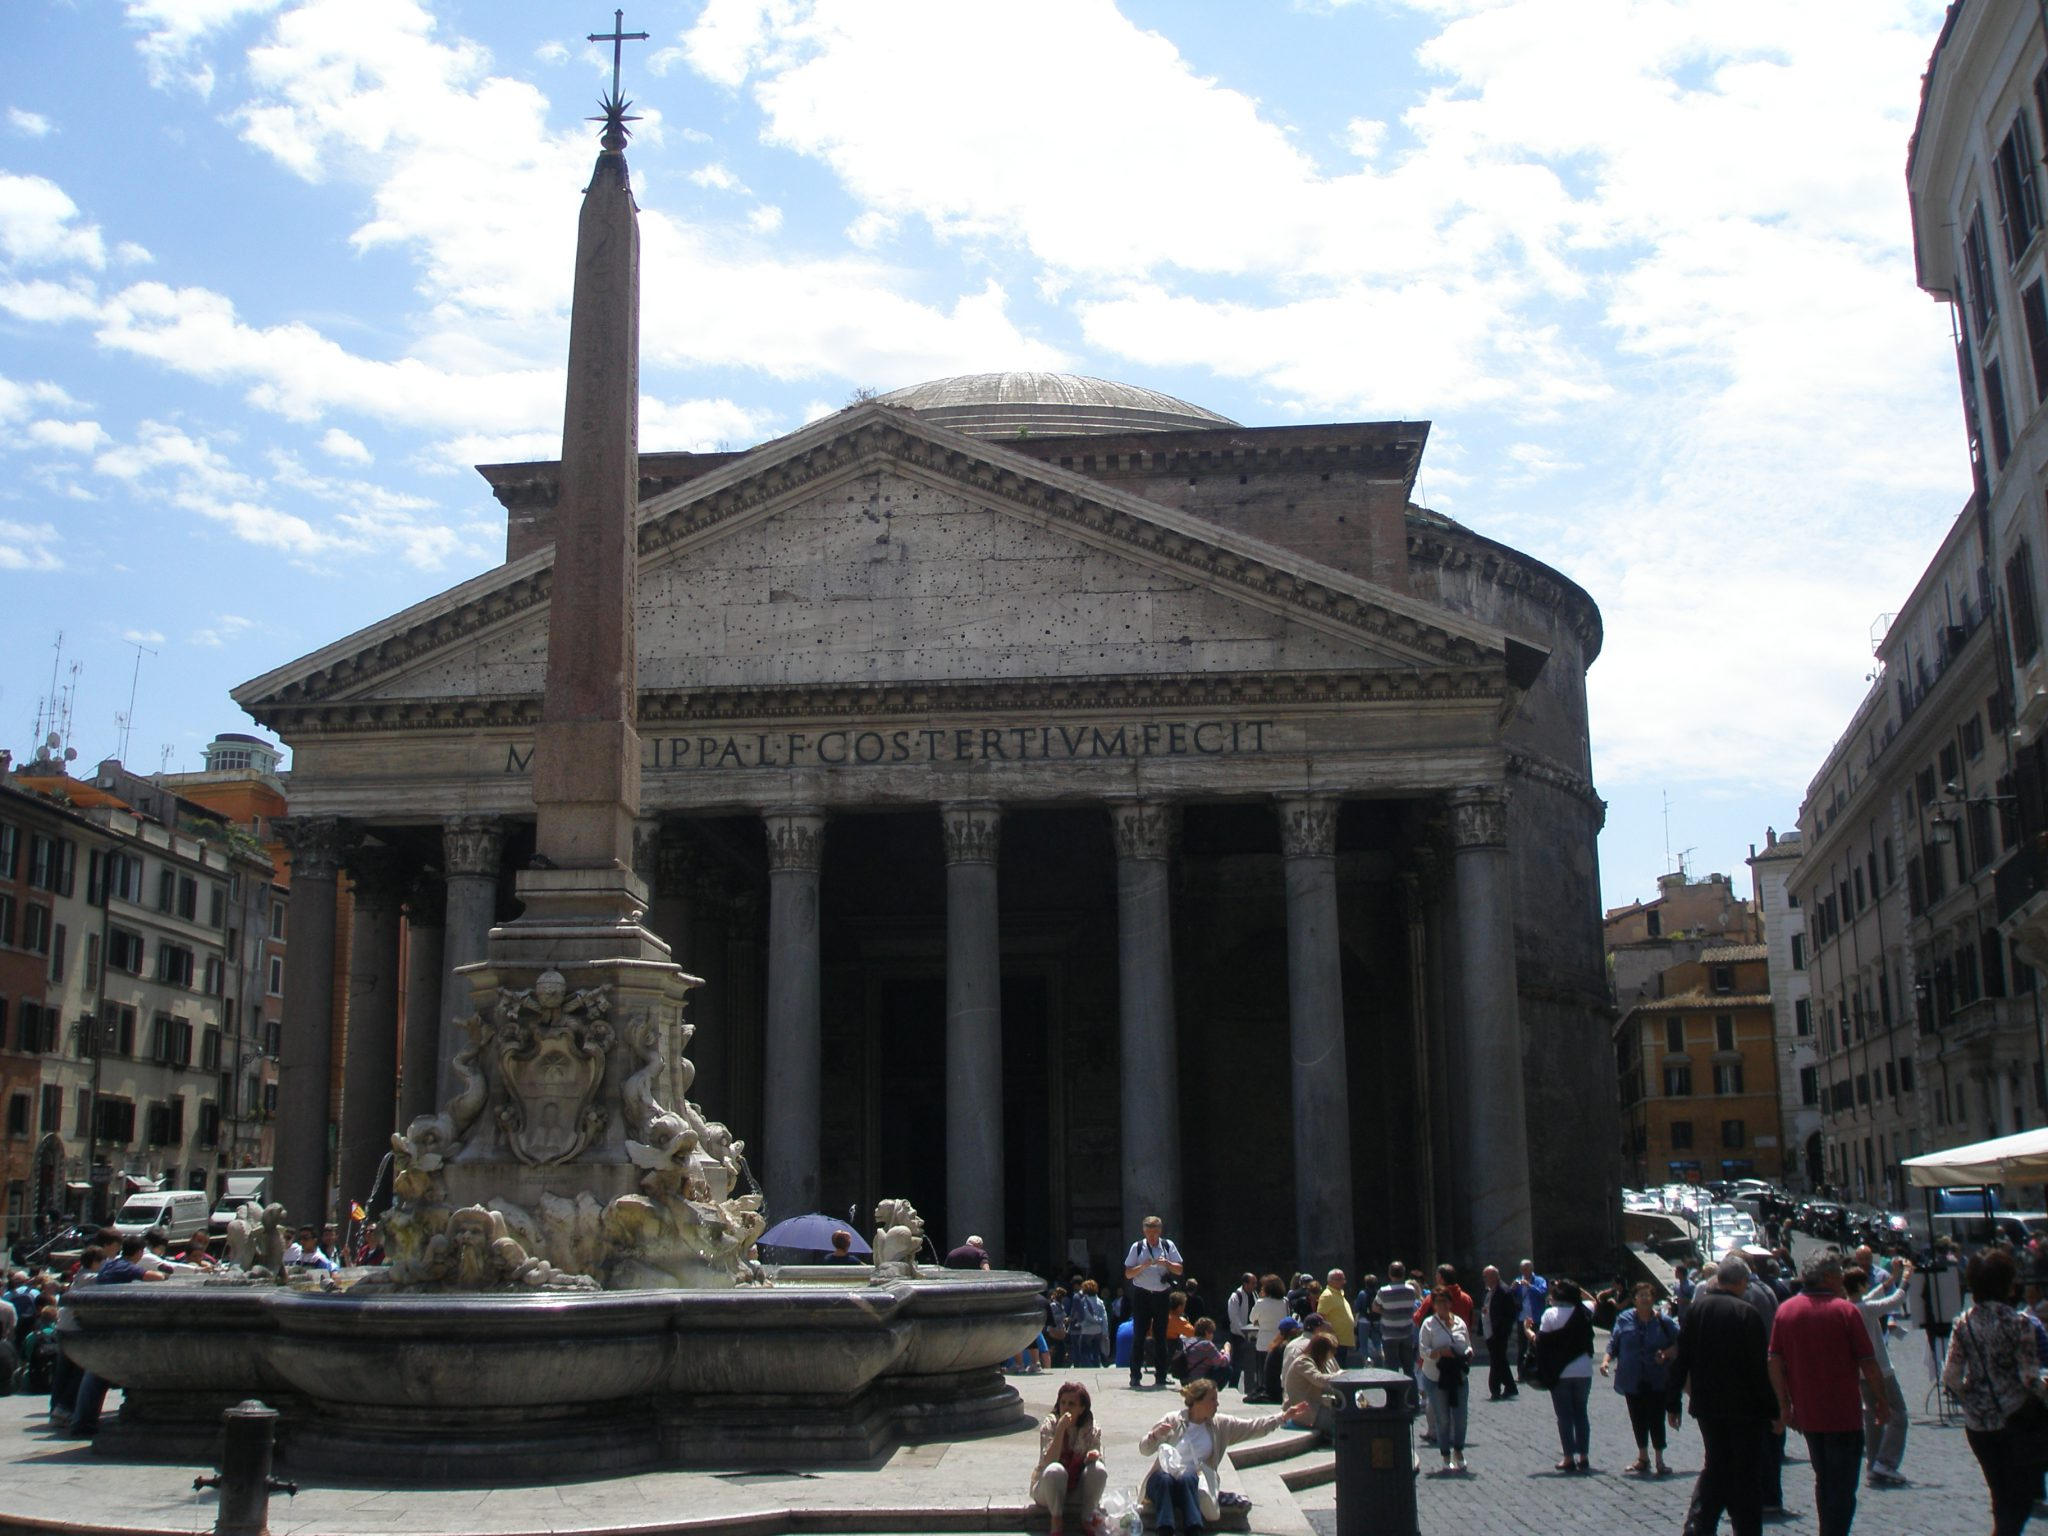 A more complete view of the Fontana del Pantheon